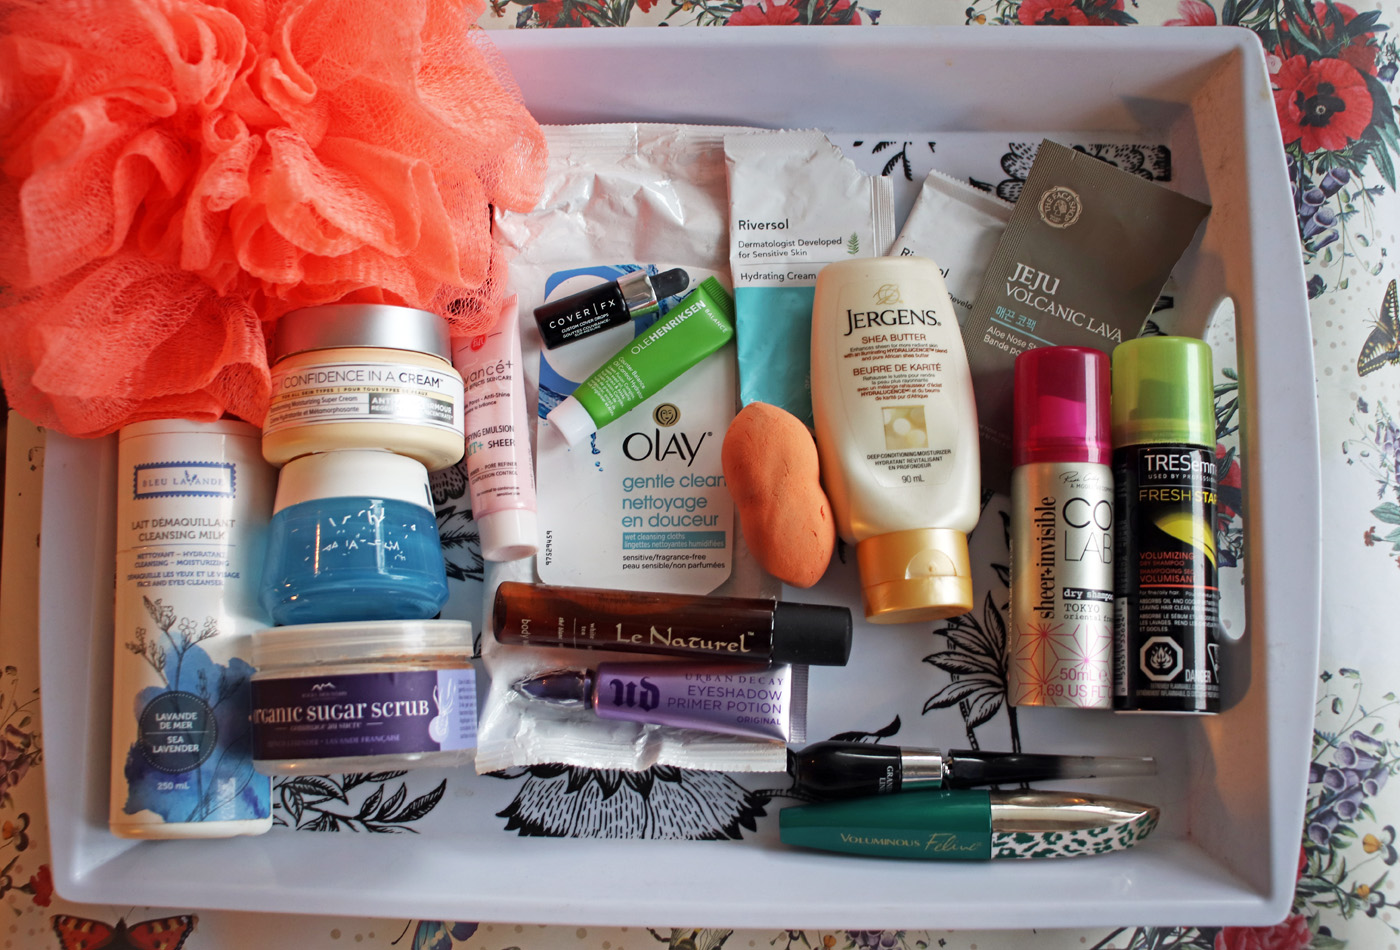 All my November & December empties